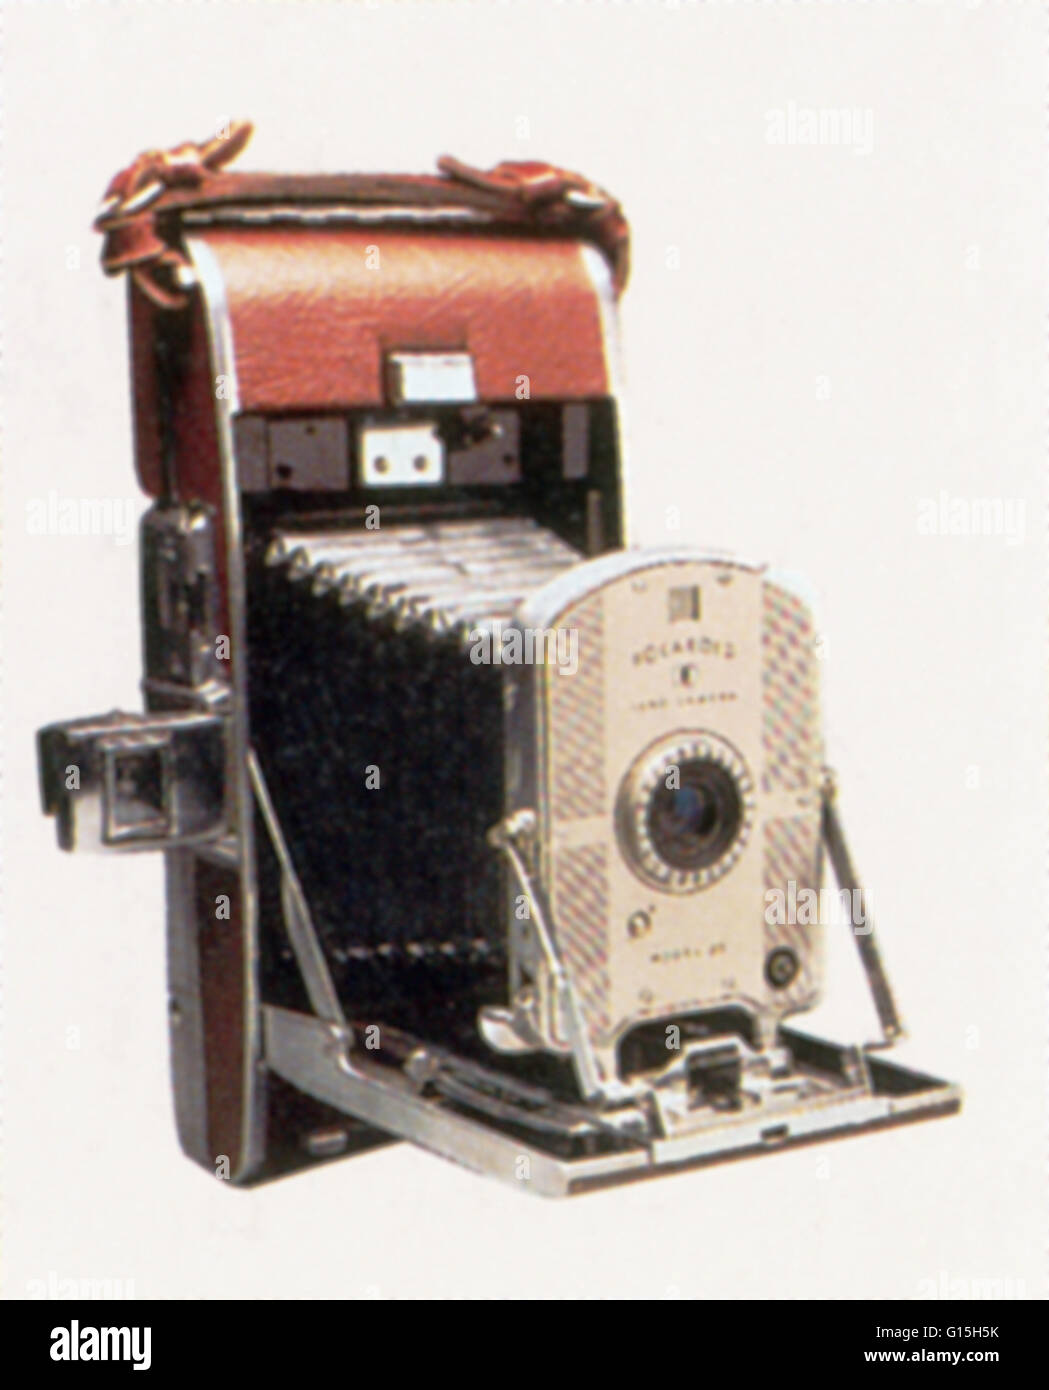 Polaroid Land Camera, invented in 1947 by Edwin Land. Edwin ...